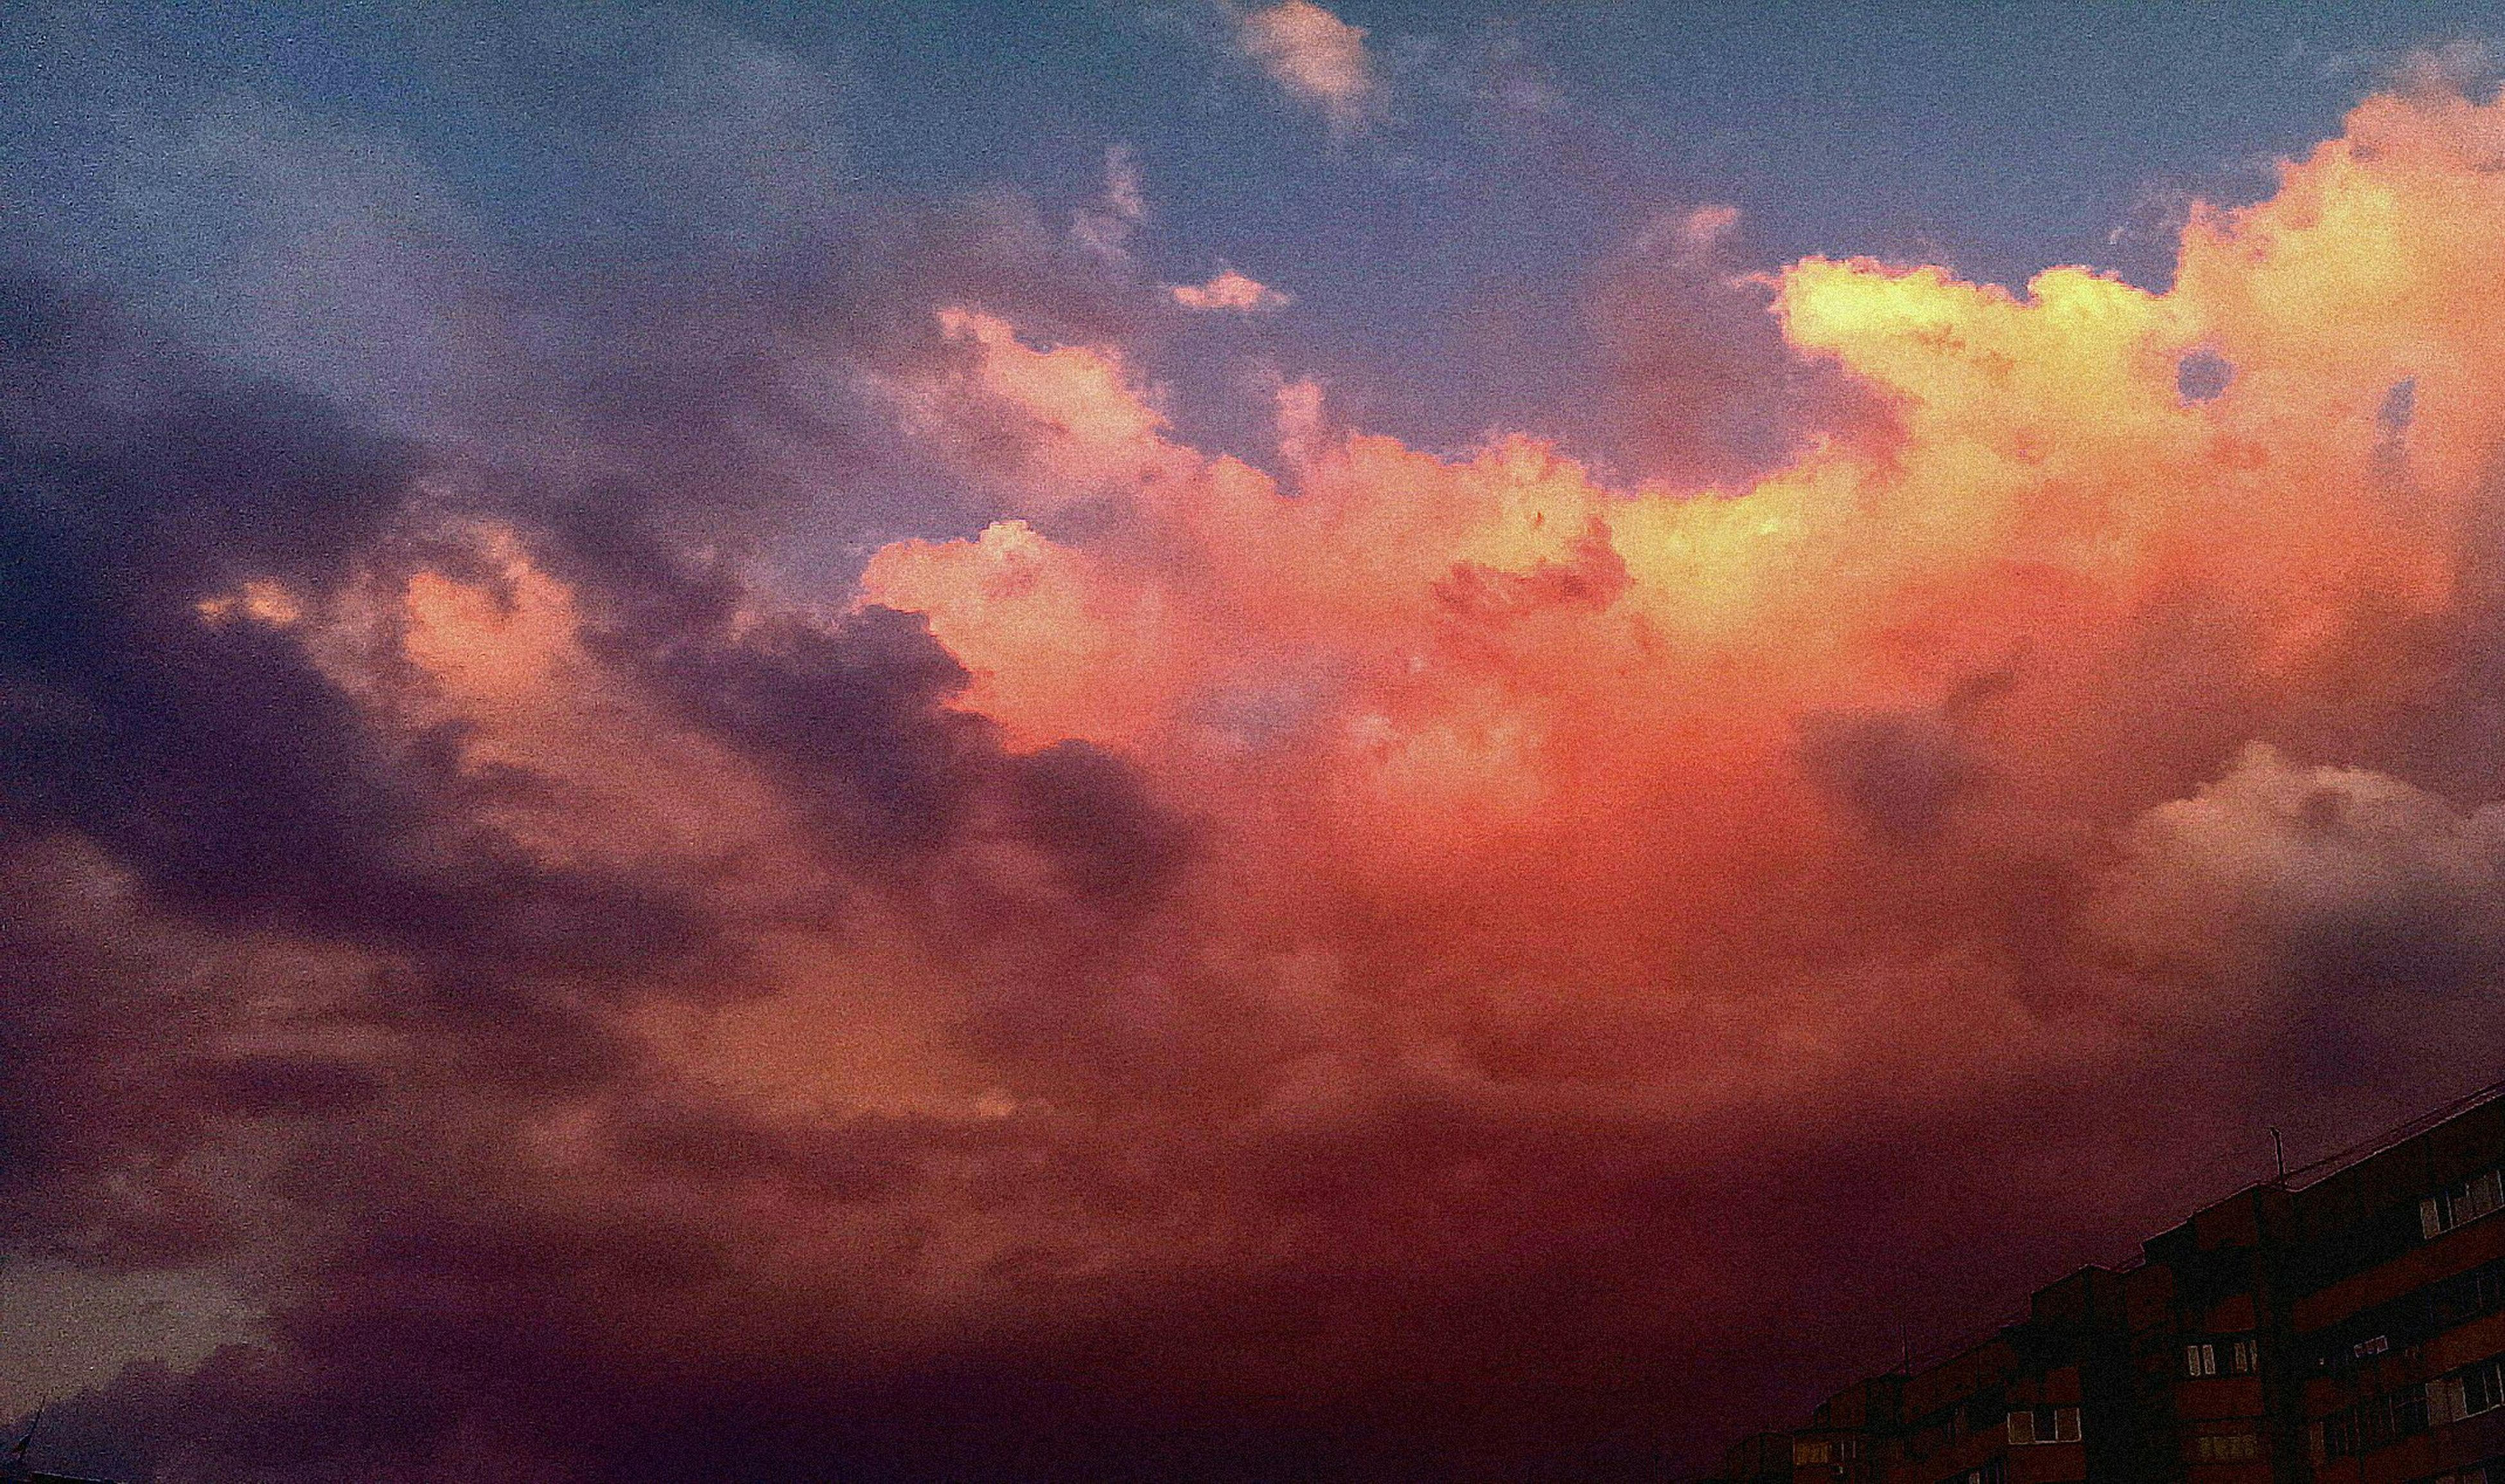 sky, cloud - sky, sunset, low angle view, cloudy, beauty in nature, scenics, dramatic sky, tranquility, orange color, weather, nature, silhouette, tranquil scene, overcast, cloud, idyllic, cloudscape, dusk, outdoors